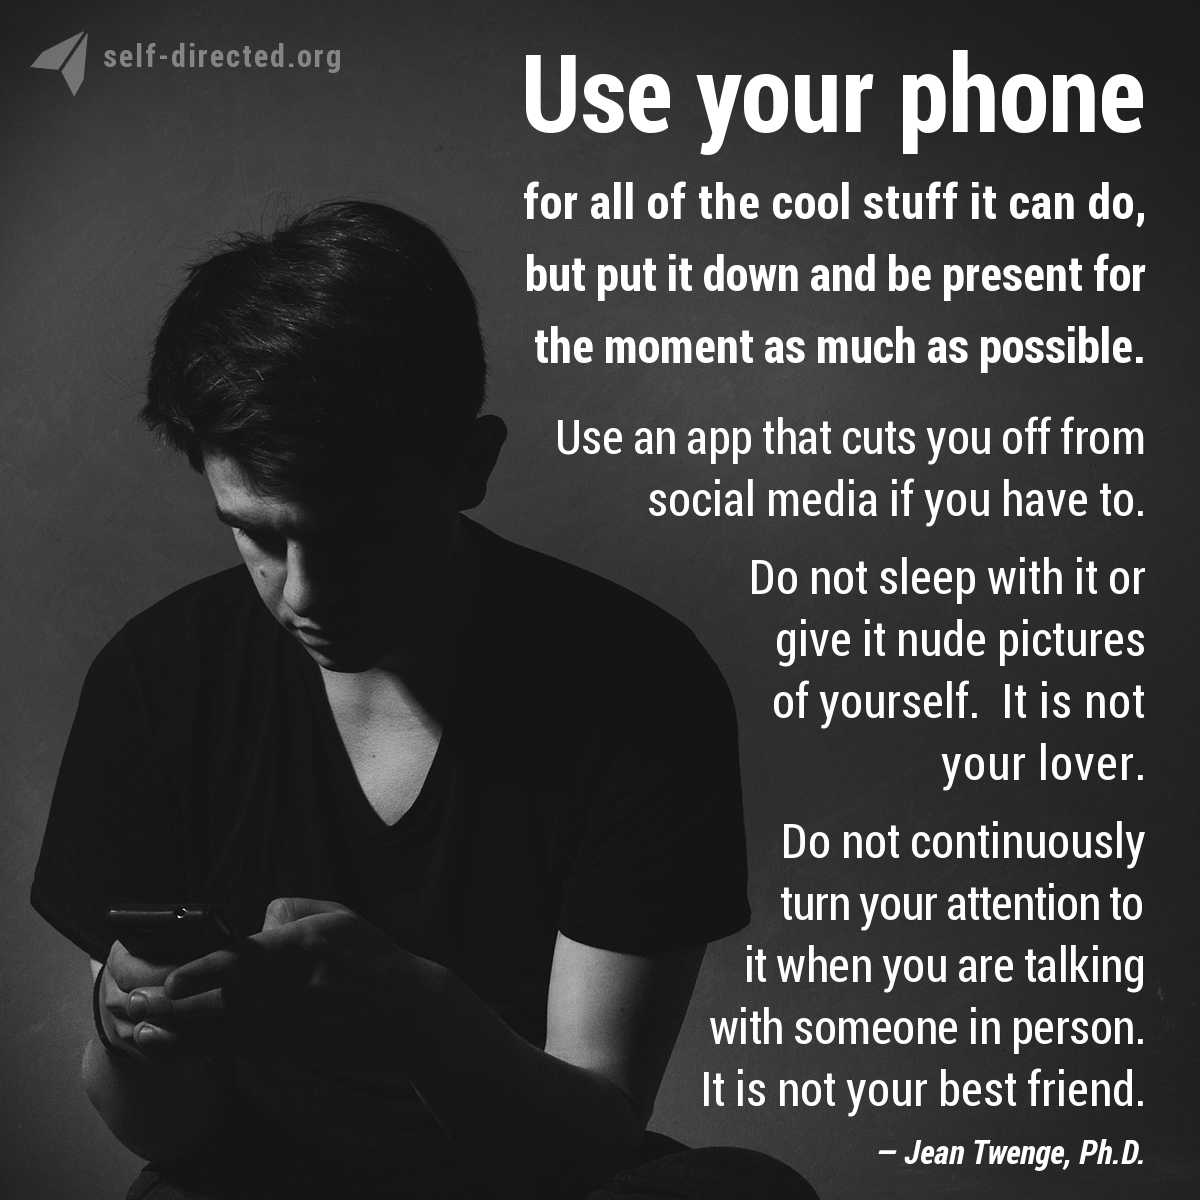 Use your phone for all of the cool stuff it can do, but put it down and be present for the moment as much as possible. Use an app that cuts you off from social media if you have to. Do not sleep with it or give it nude pictures of yourself. It is not your lover. Do not continuously turn your attention to it when you are talking with someone in person. It is not your best friend.